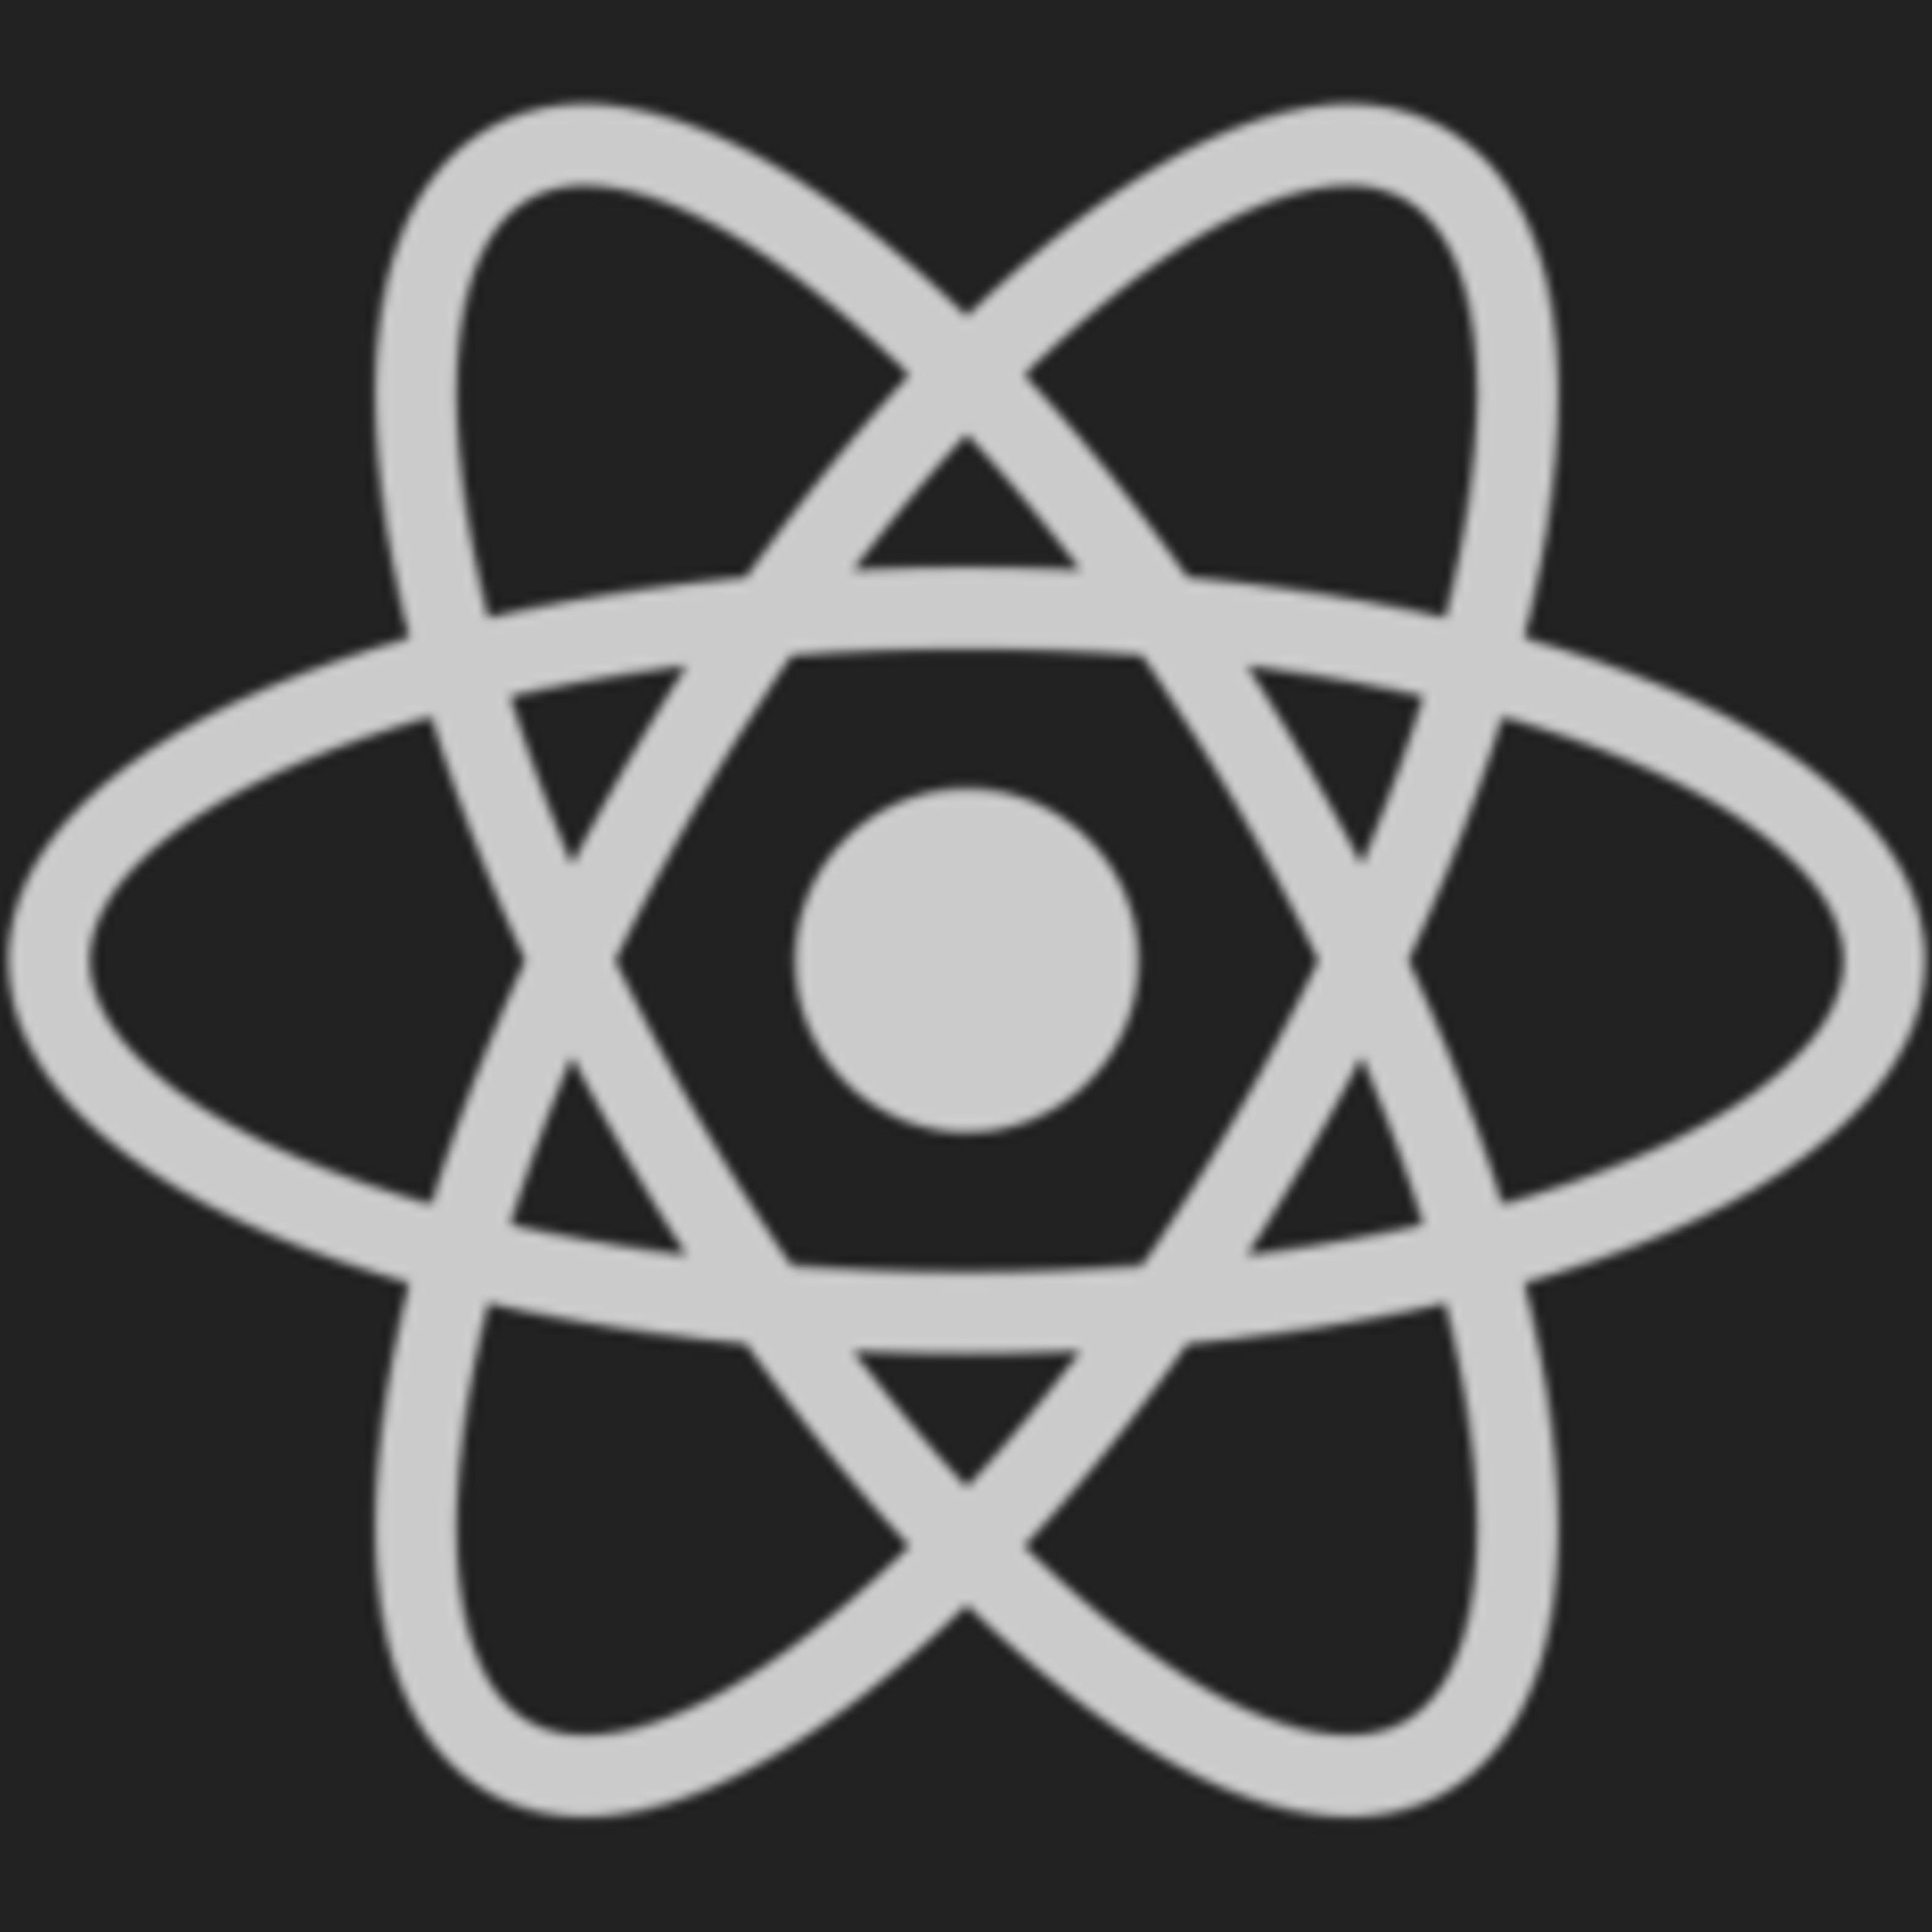 Multiplatform Mobile App Development with React Native | Coursera